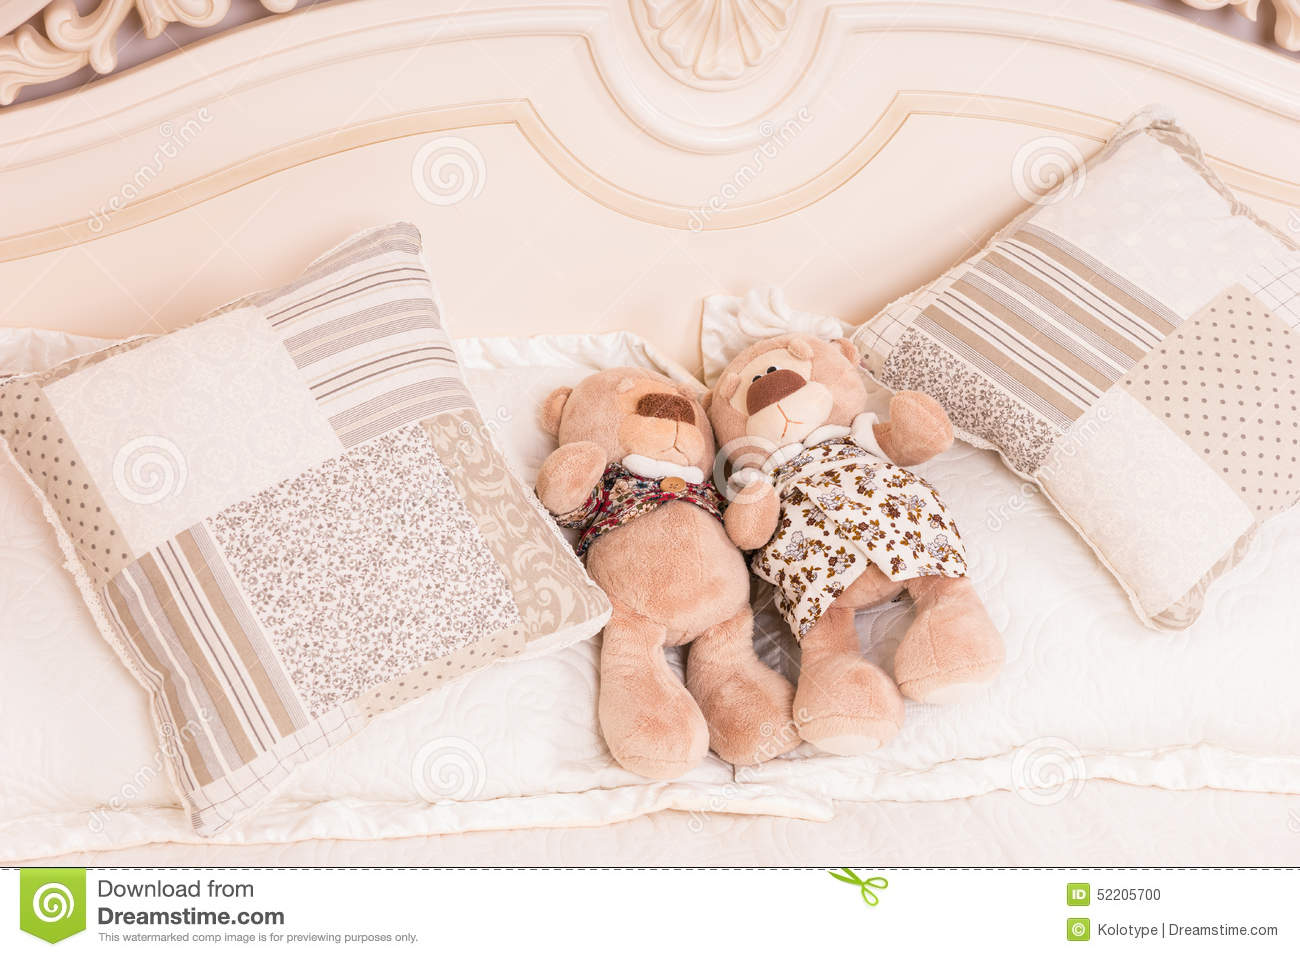 Teddy Bear Couple Snuggling en cama